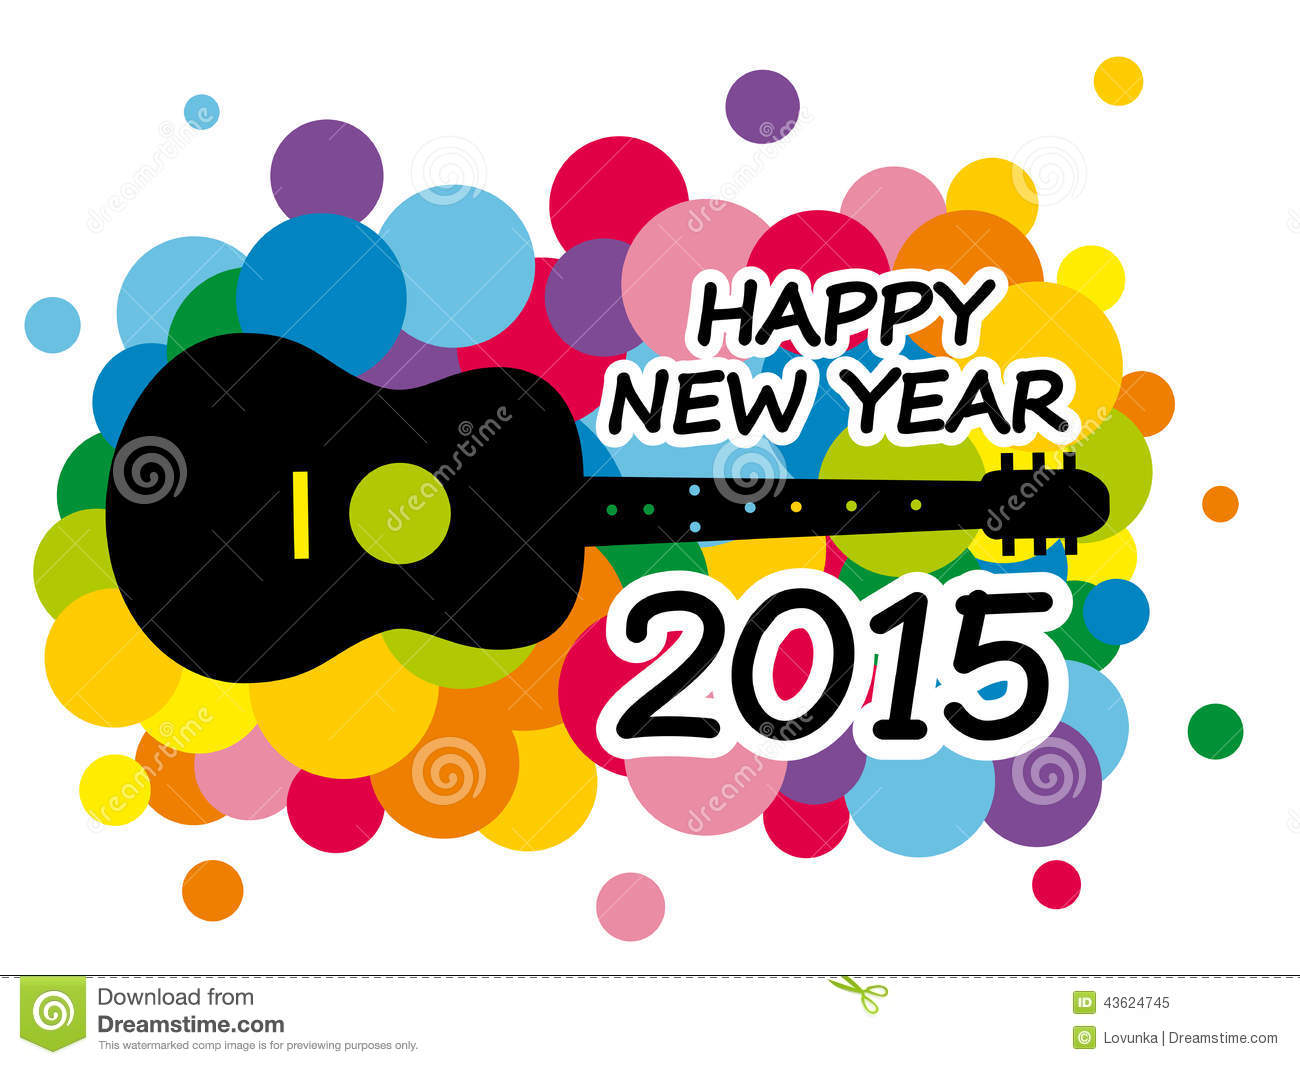 Happy new year stock vector image of audio childish 43624745 - Happy new year sound europe ...